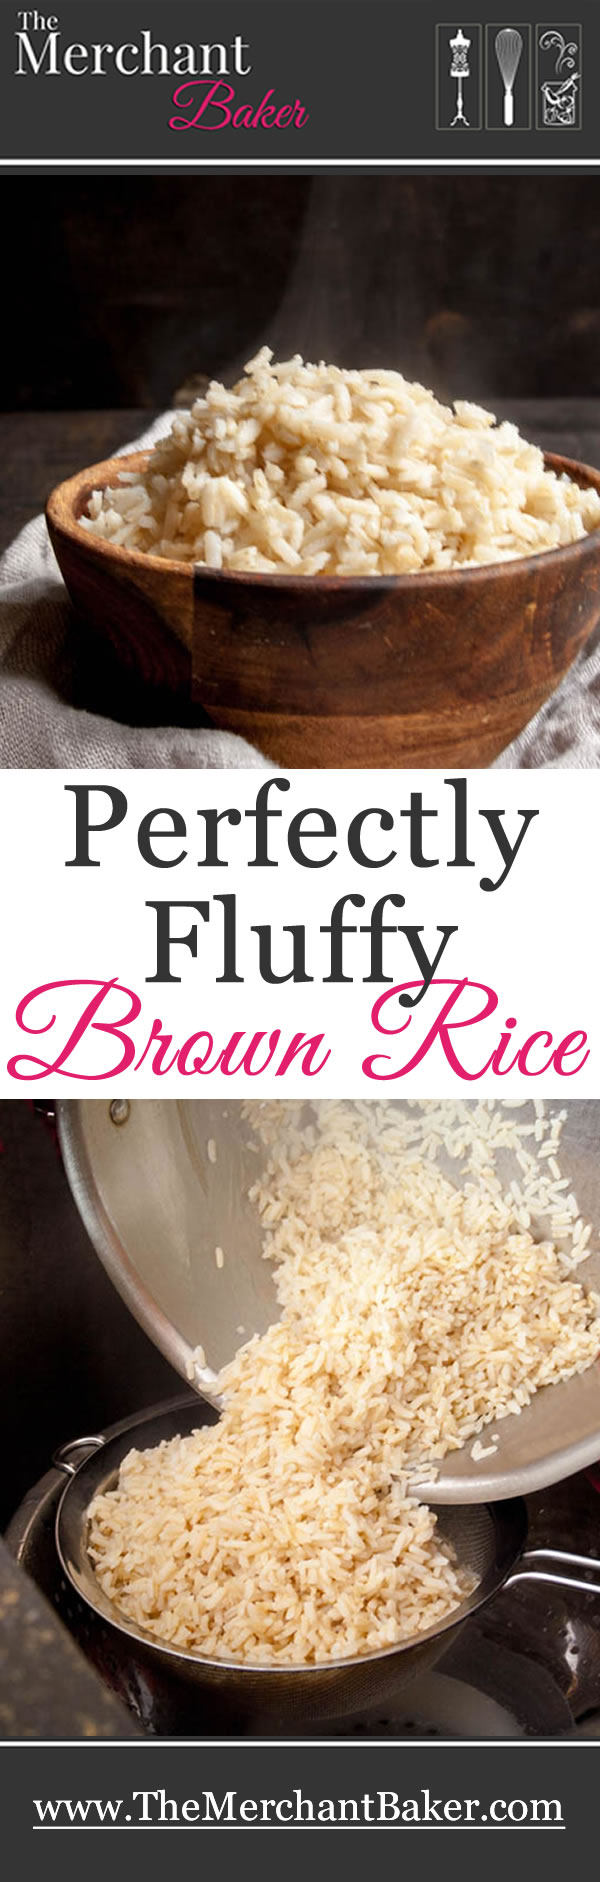 Perfectly fluffy brown rice recipe brown rice rice and brown perfectly fluffy brown rice ccuart Images